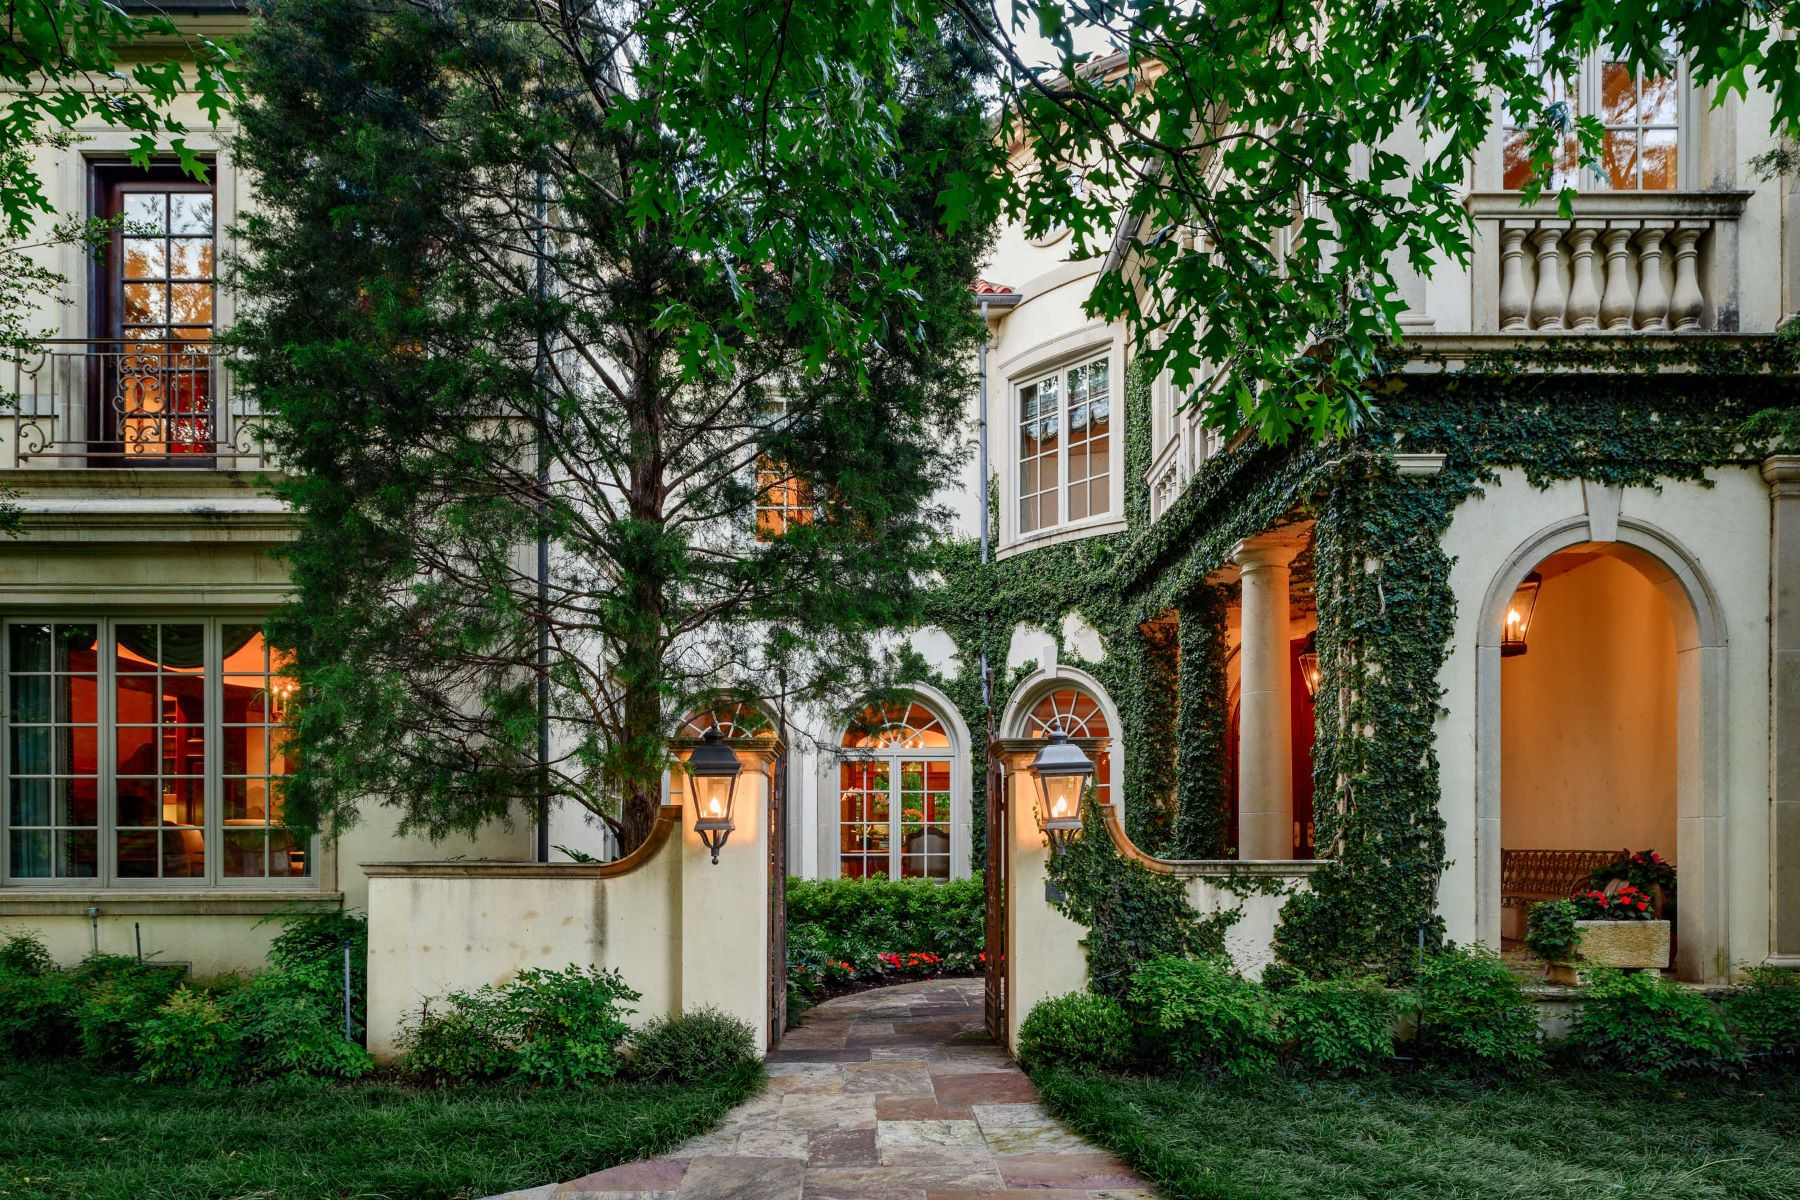 Single Family Homes for Active at Iconic Italian Renaissance Villa in Highland Park 4300 Armstrong Parkway Highland Park, Texas 75205 United States